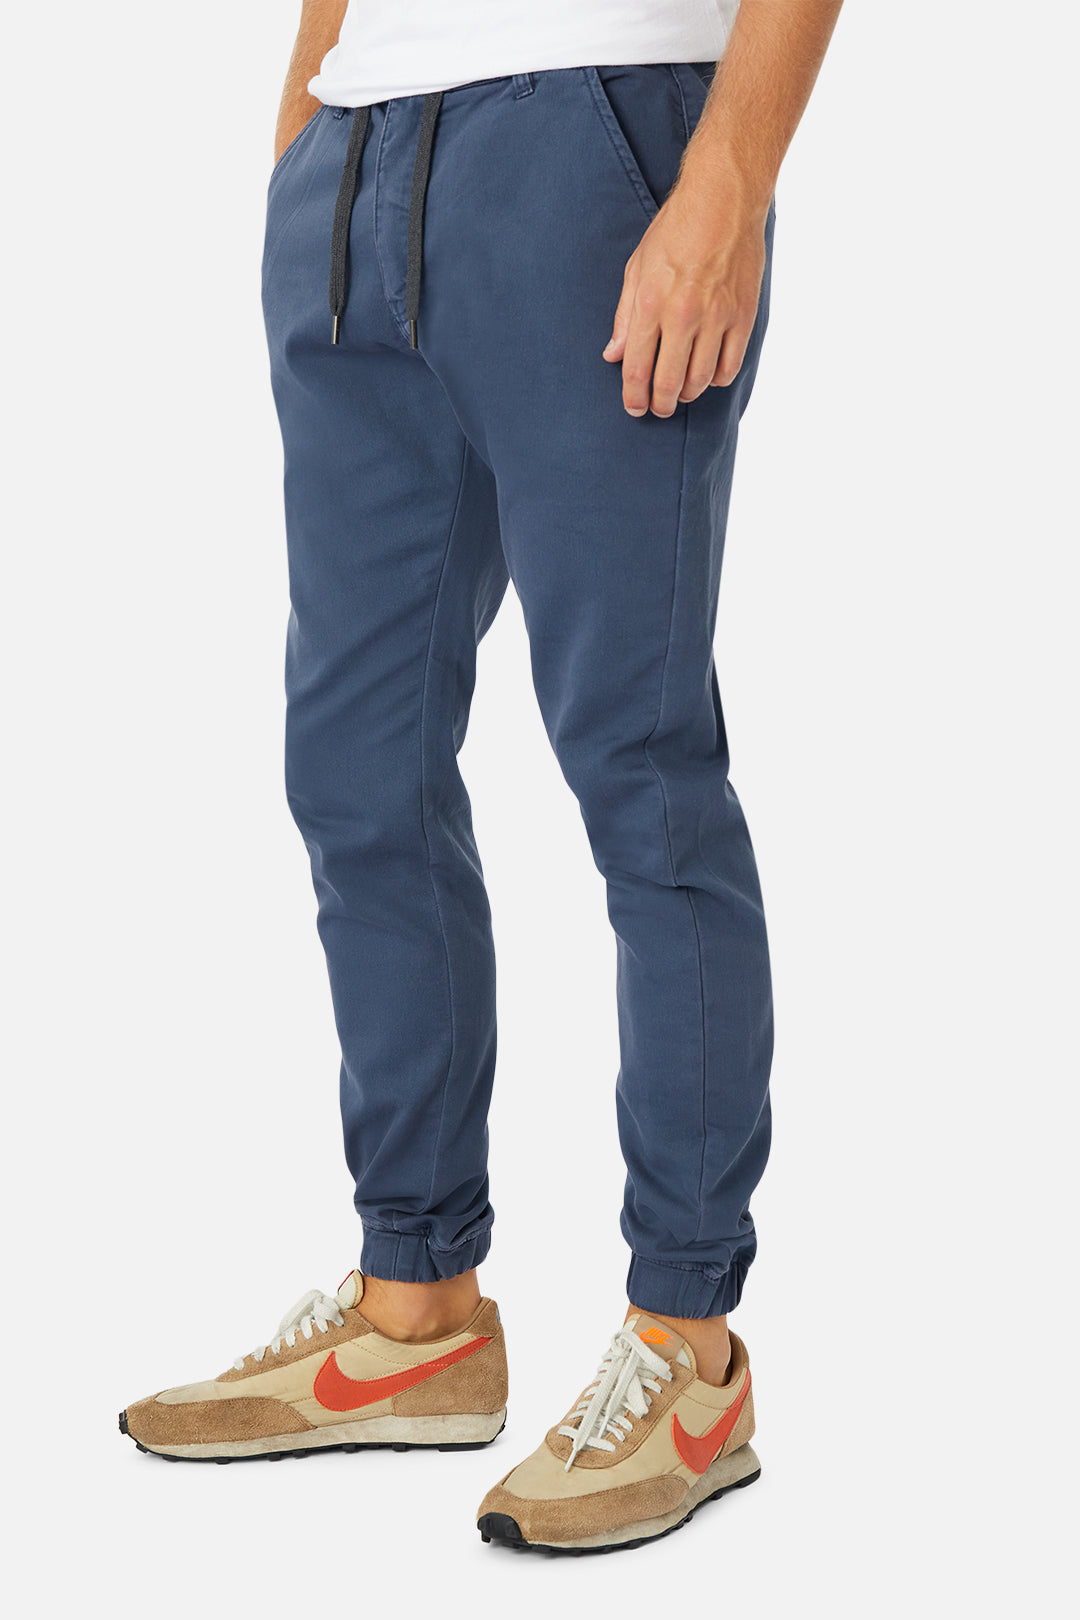 The Drifter Chino Pant - Washed Indigo